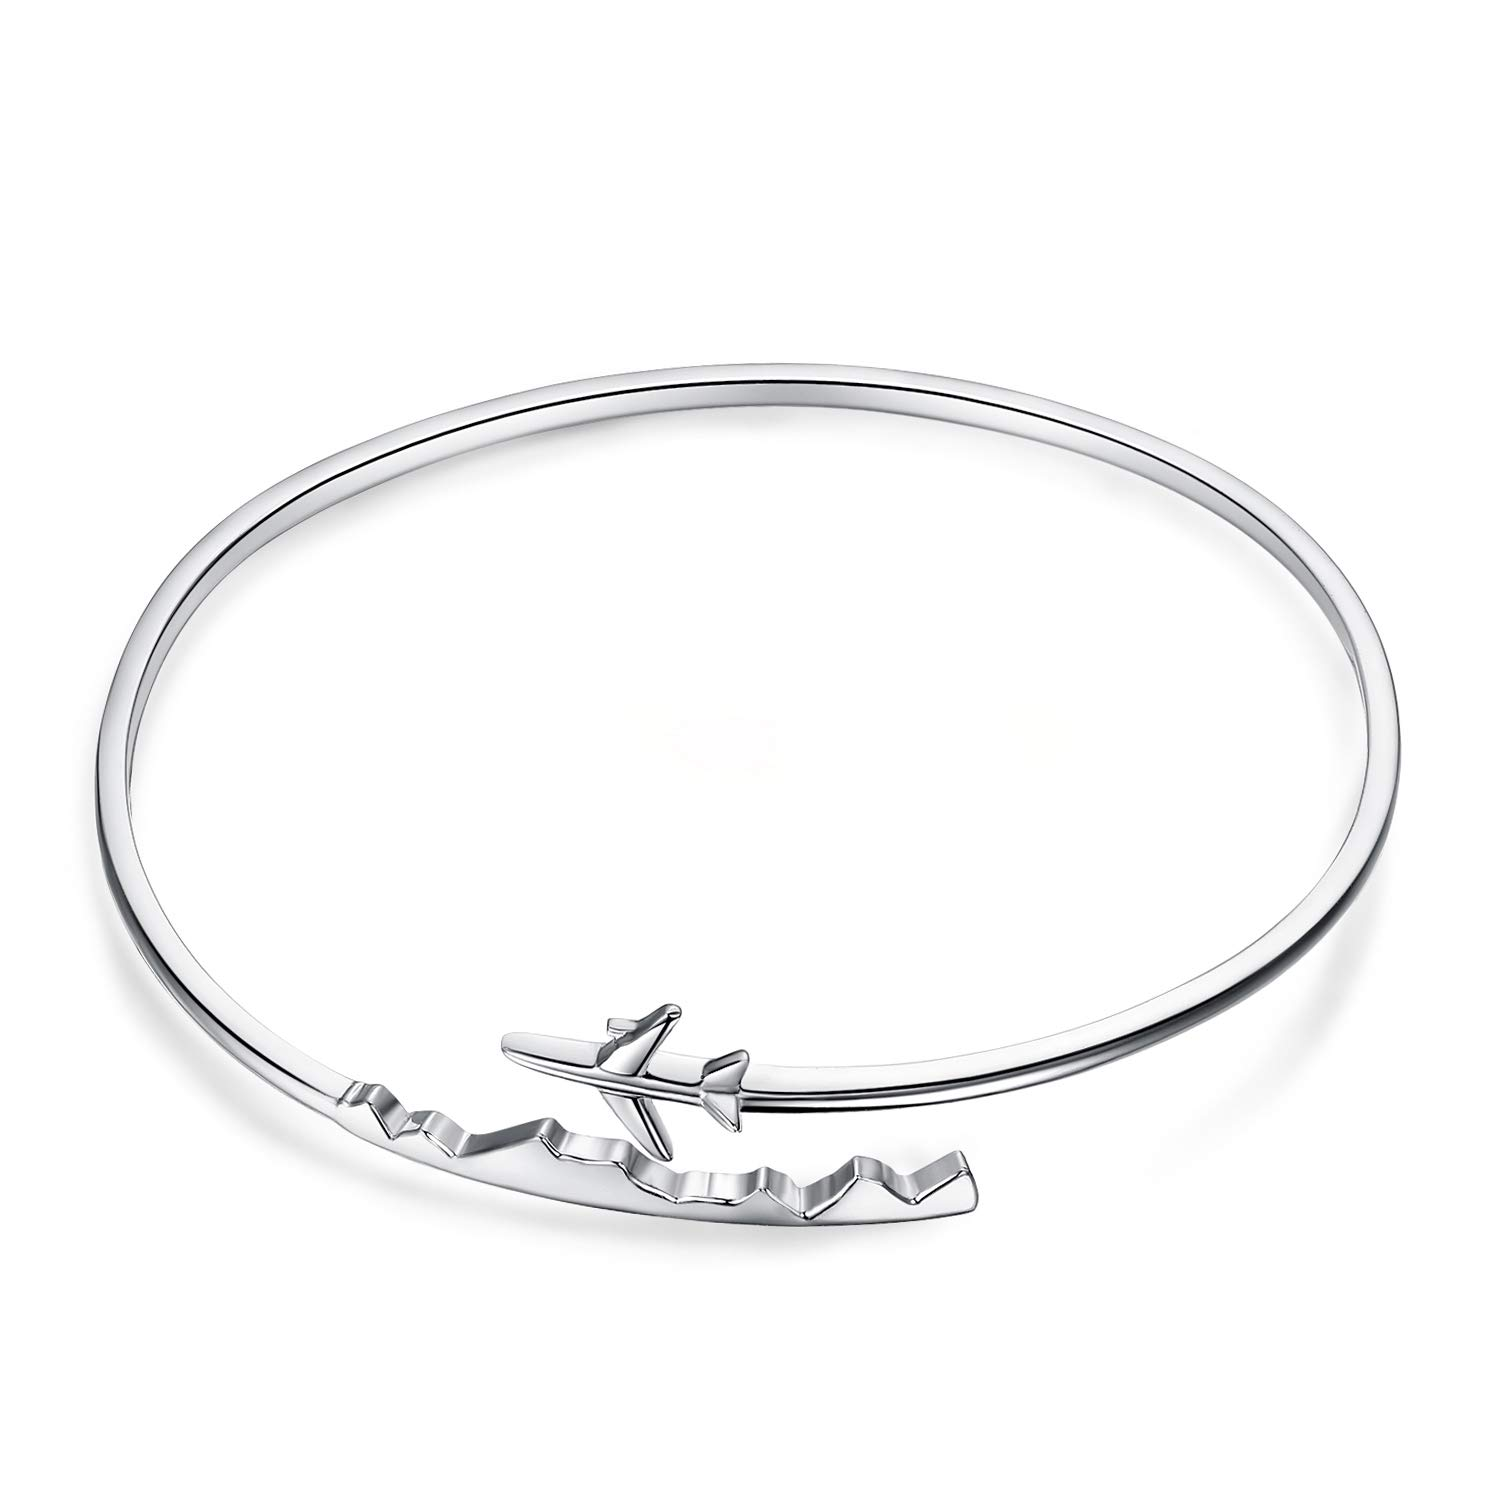 JewelryPalace 925 Sterling Silver World Travel Souvenir Airplane Adjustable Open Bangle Bracelet by JewelryPalace